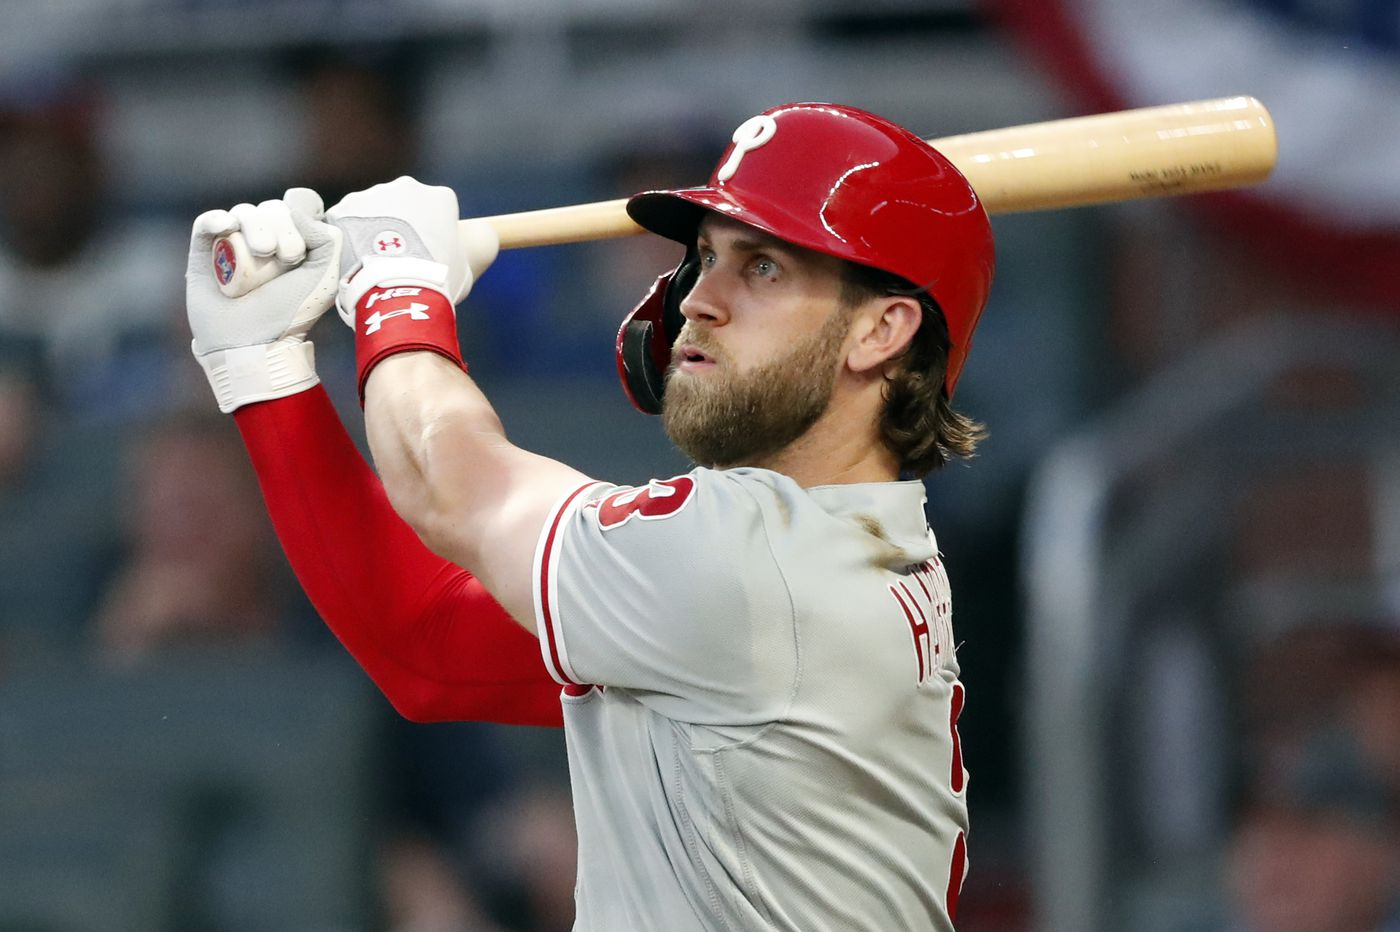 Bryce Harper is not an All-Star, but agent Scott Boras thinks he should be